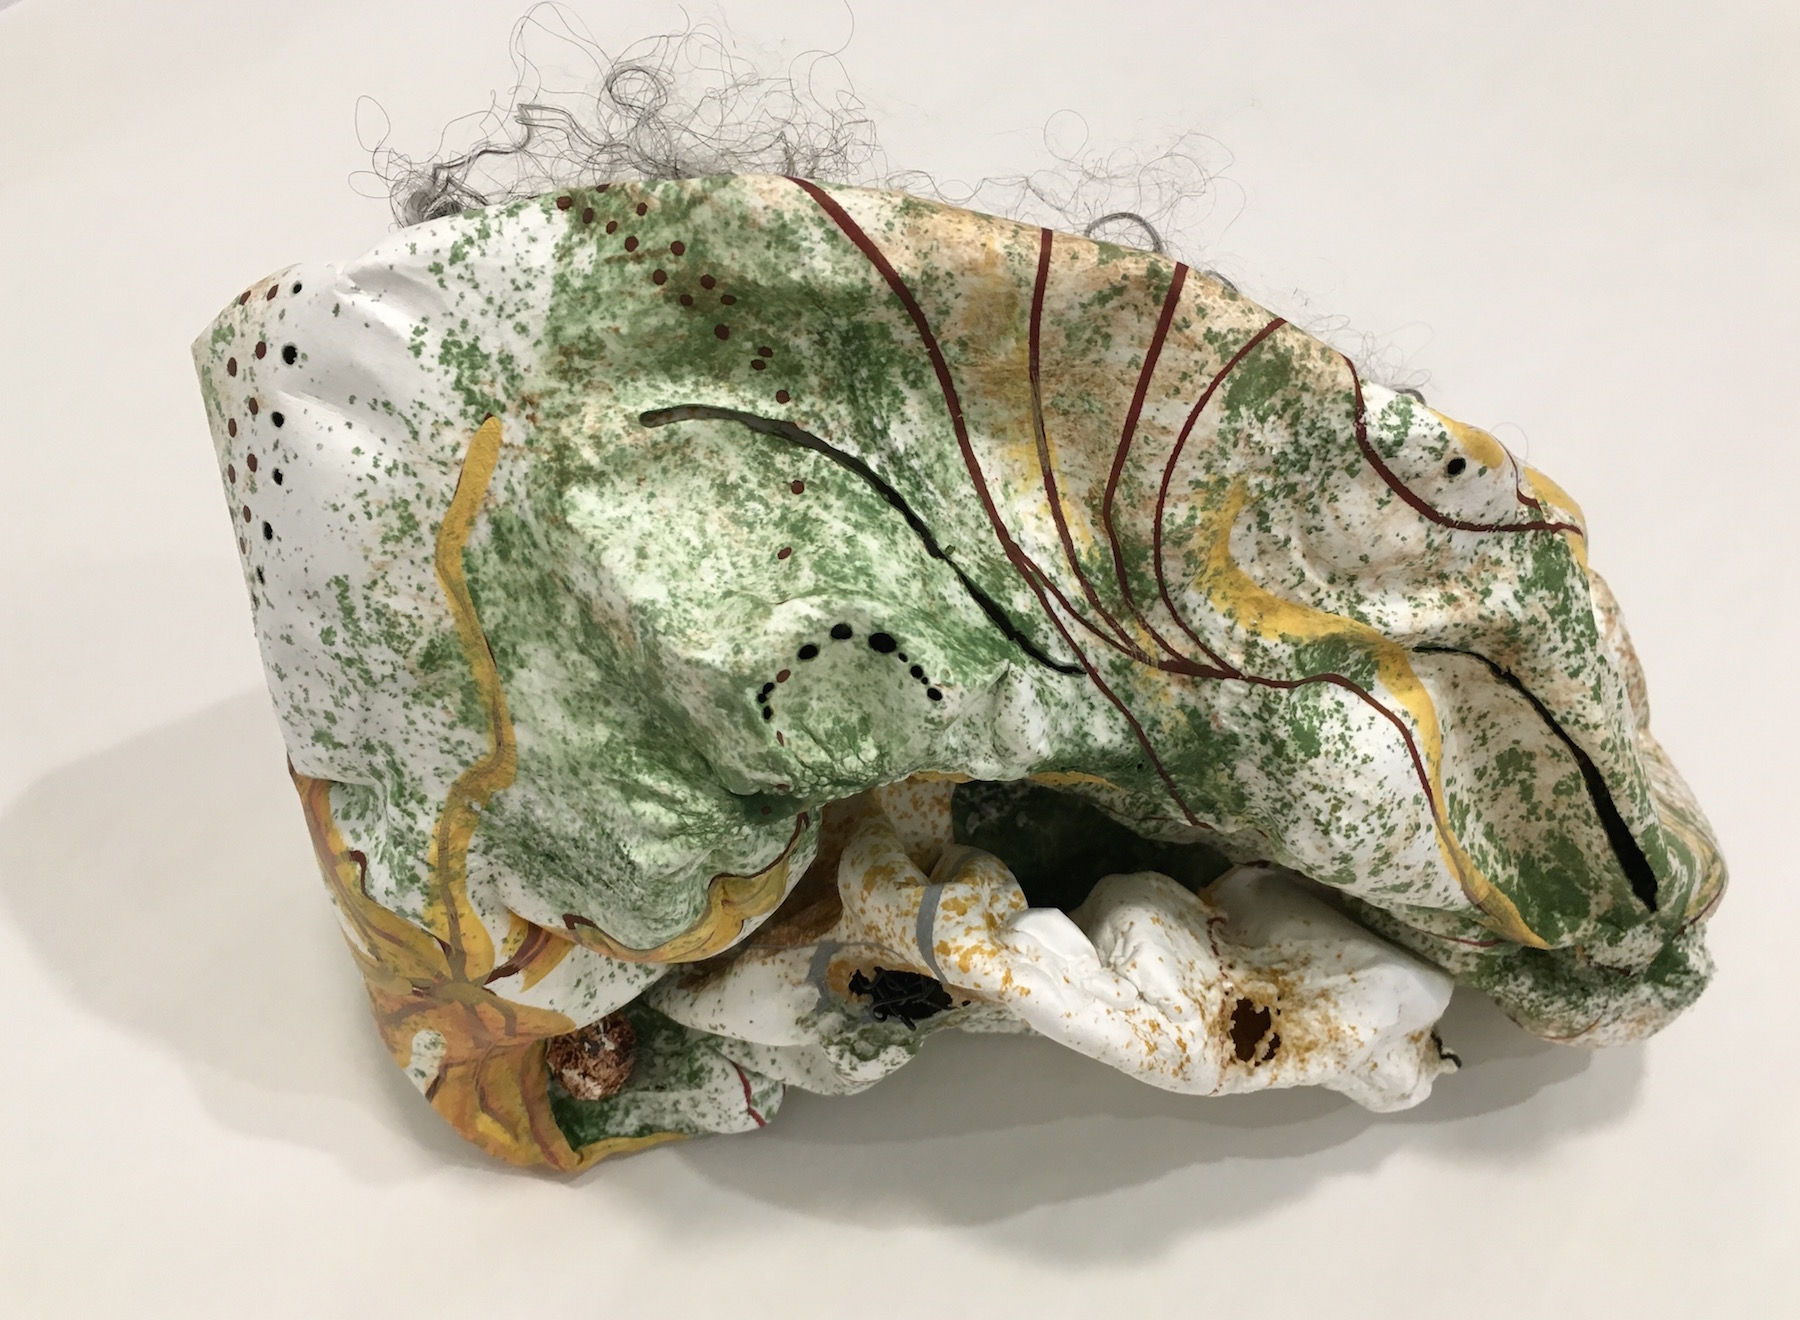 Susan Emmerson,  Yellowing , acrylic on cut and molded Tyvek, mixed media, 10x6.5x6